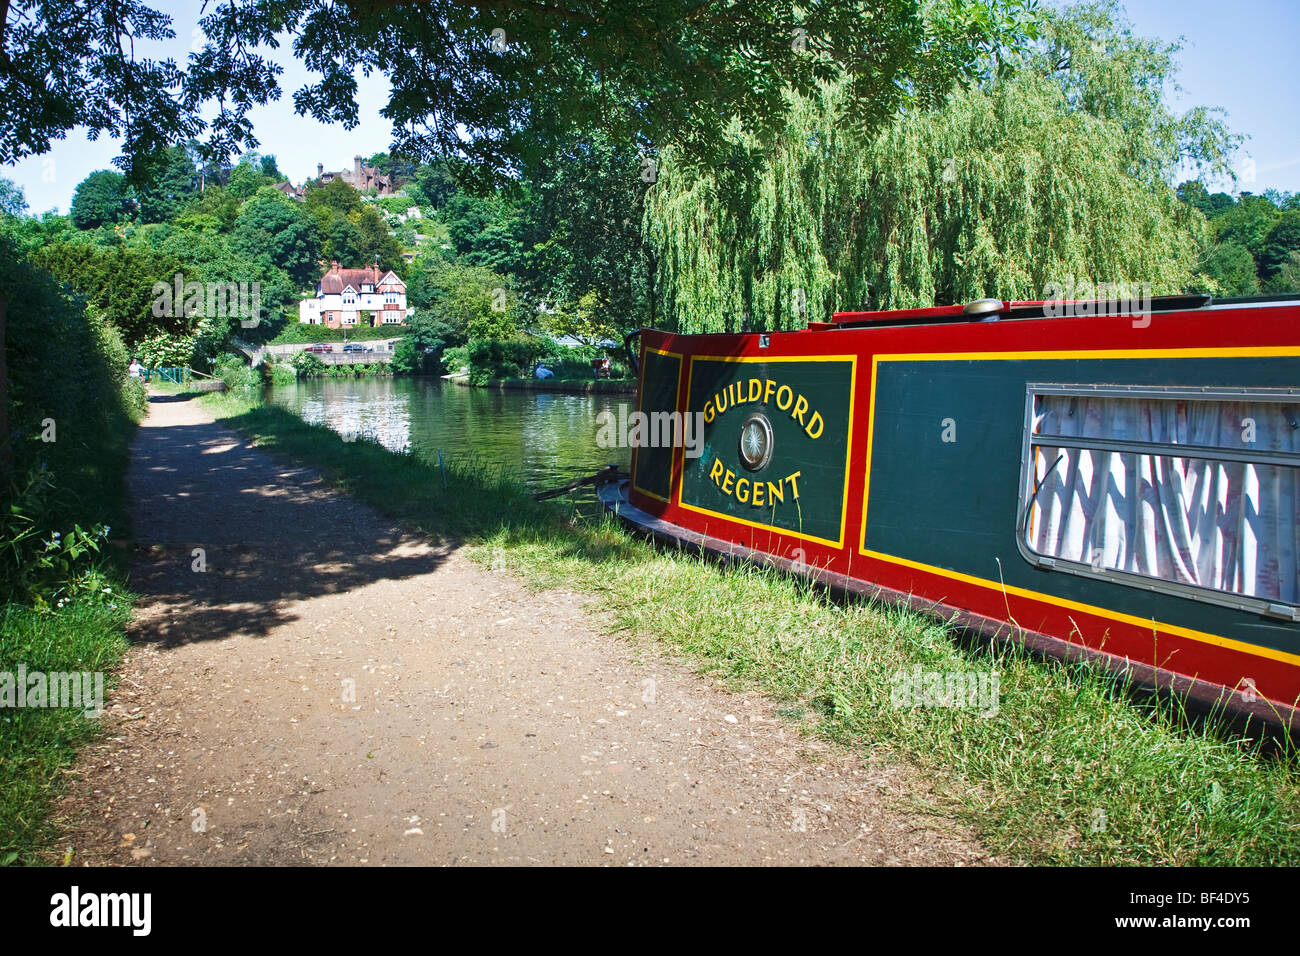 A green canal Narrowboat on the Wey & Arun Canal in Surrey, England UK 2009 - Stock Image